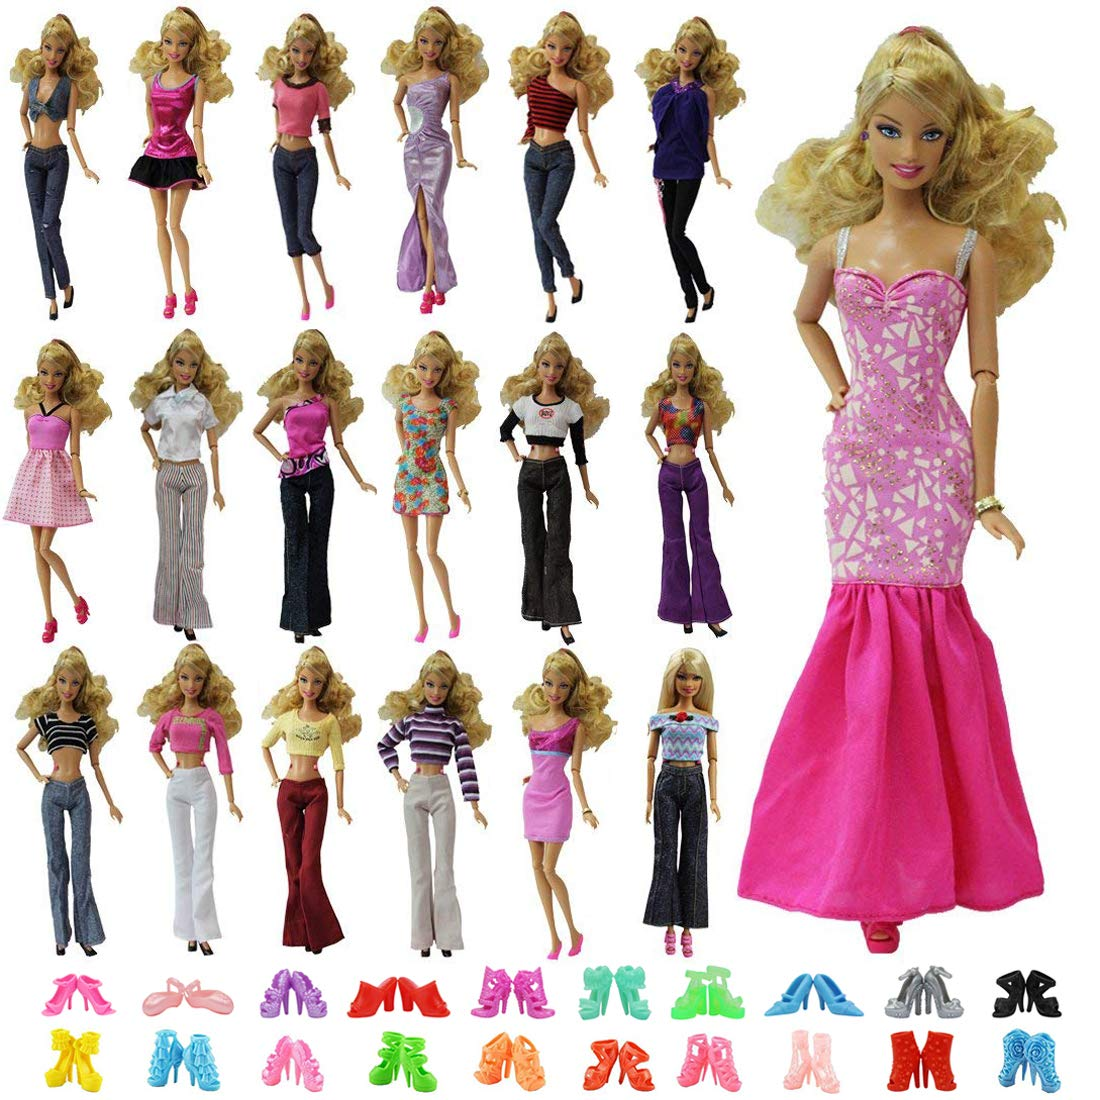 ZITA ELEMENT 5 Sets Barbie Clothes Mix Shirt & Pants 5 Pairs Shoes Accessories Barbie Doll Random Style